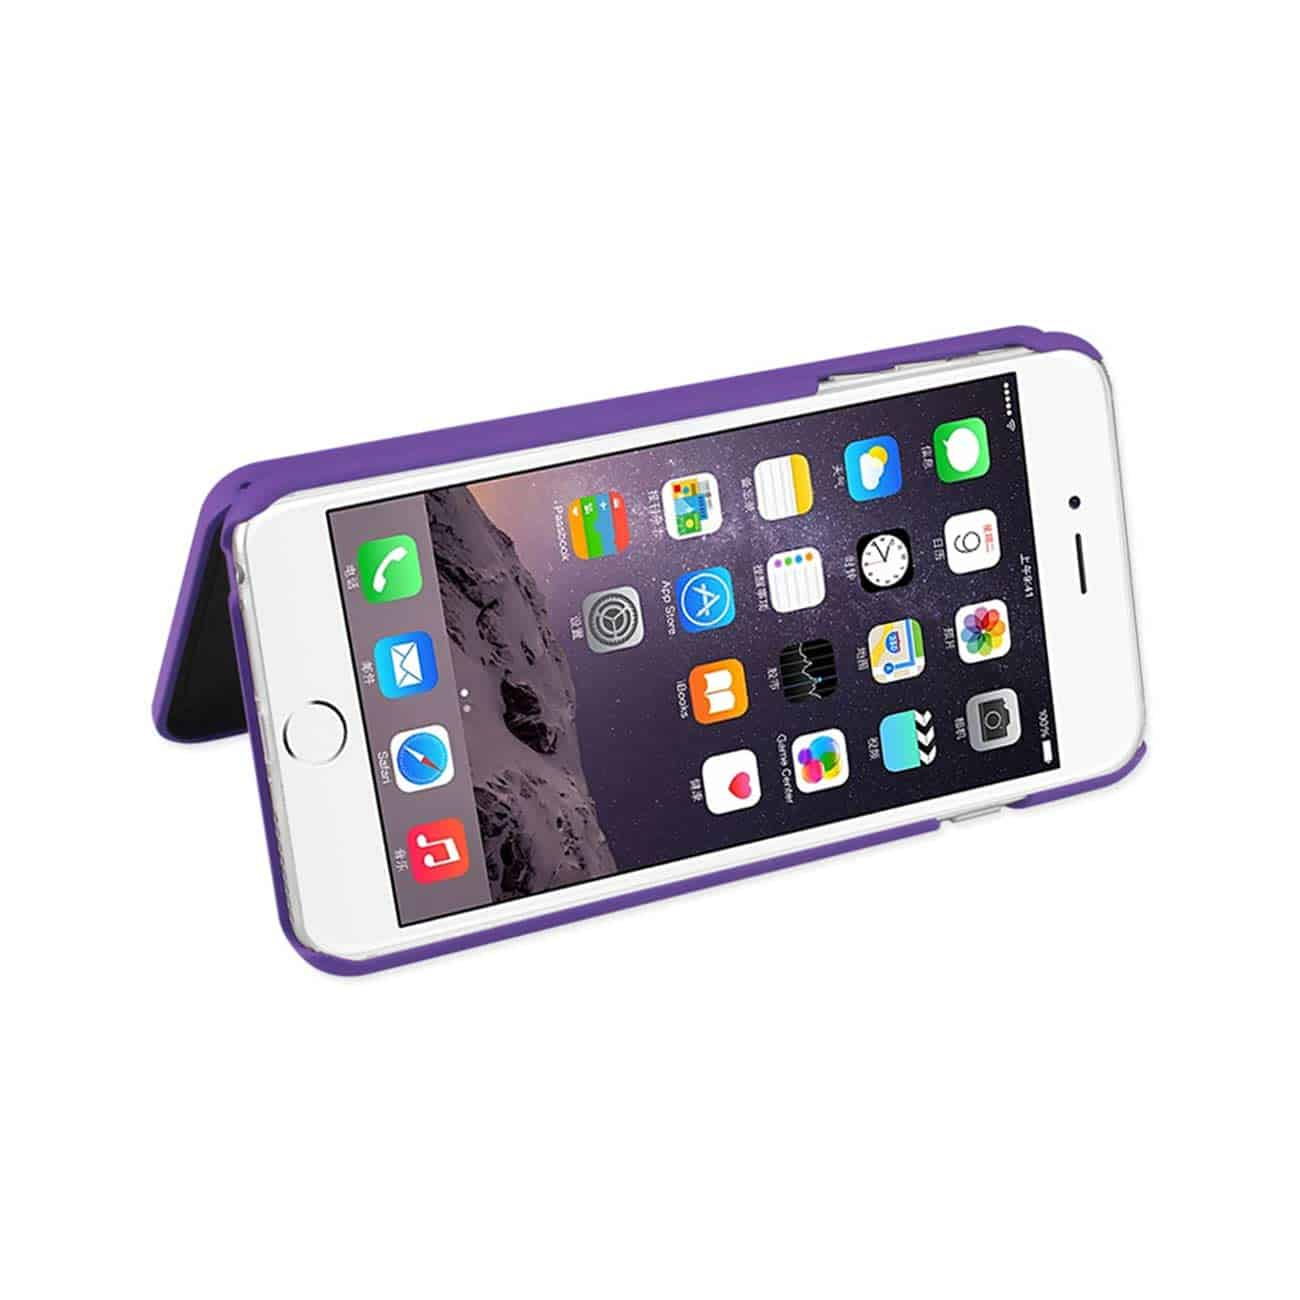 IPHONE 6 PLUS/ 6S PLUS HIDDEN MIRROR WALLET CASE WITH KICKSTAND FUNCTION IN PURPLE